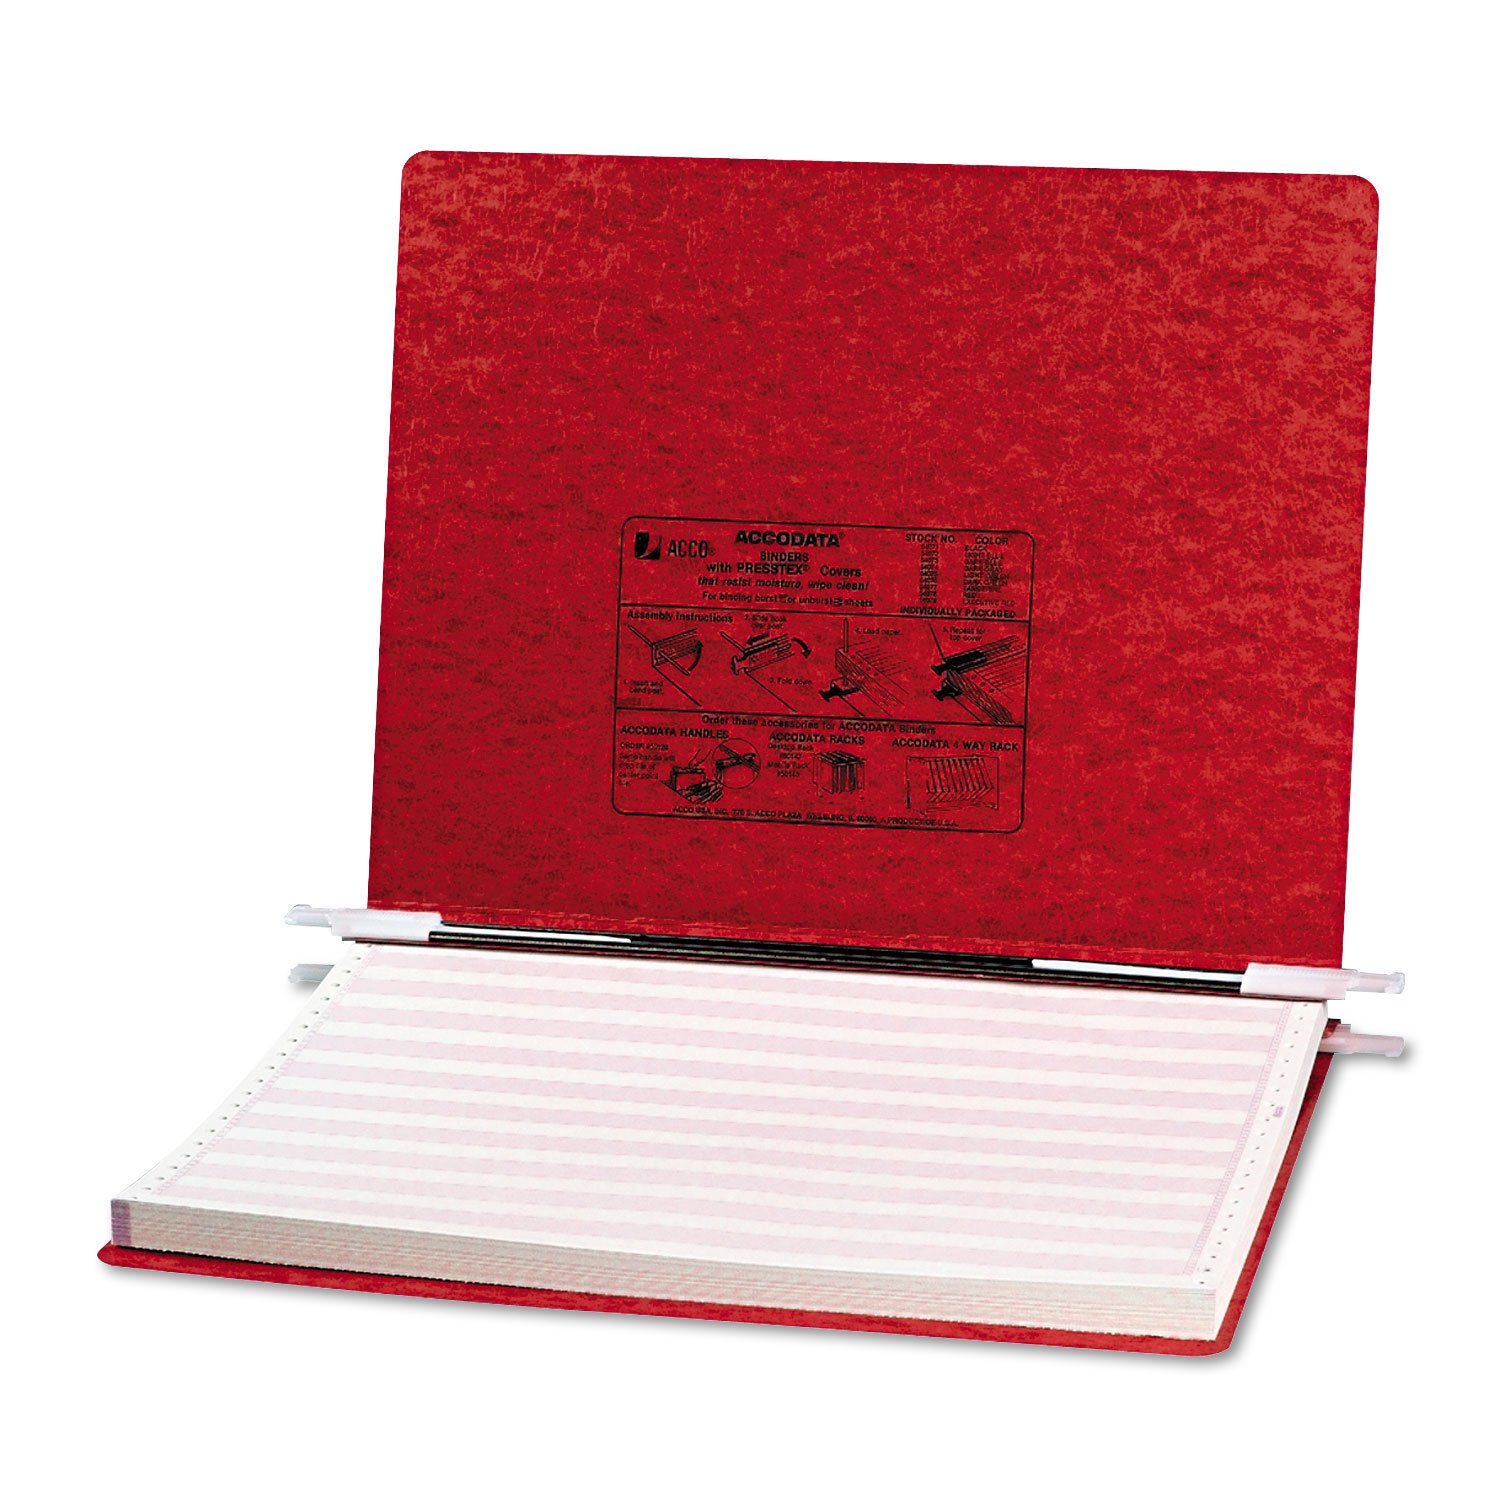 Acco 54079 Presstex Hanging Data Binder, 14-7/8 x 11, 6'' Cap, Bright Red, 1/EA